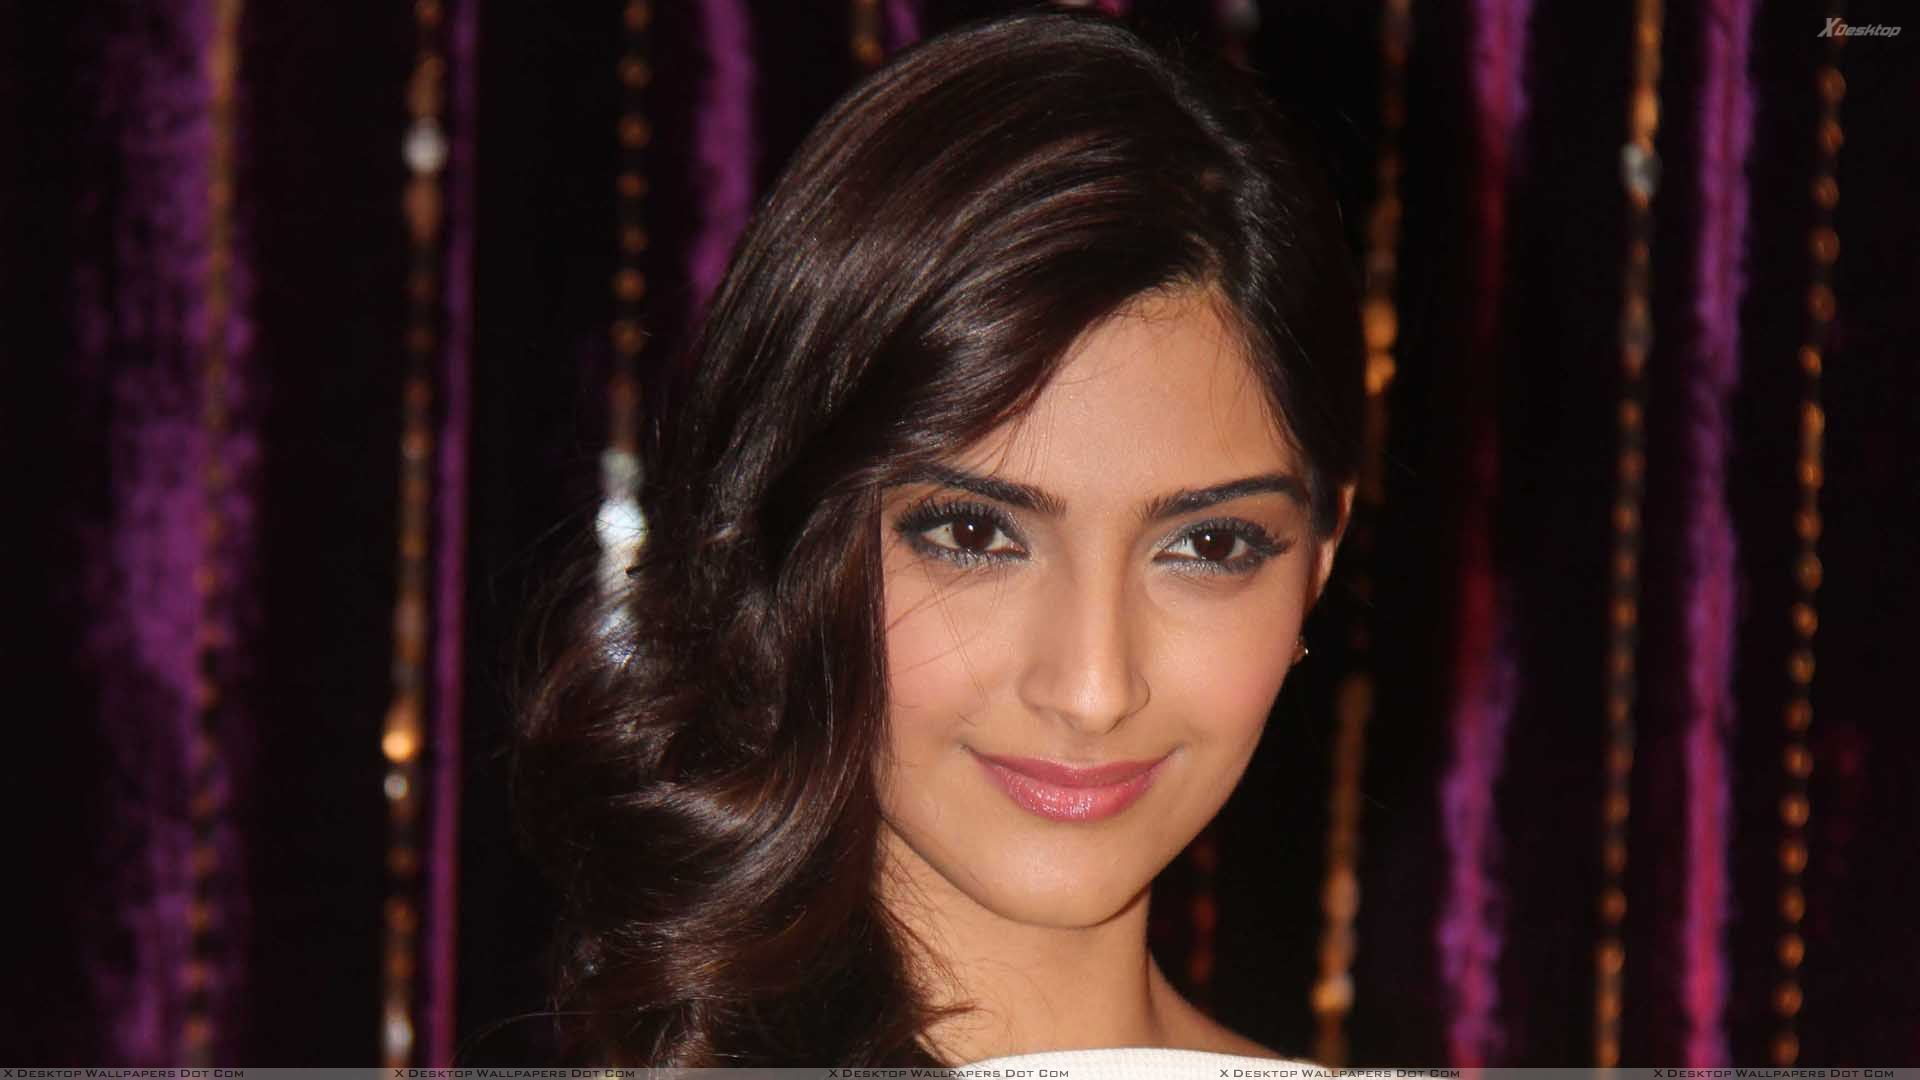 Sonam Kapoor Wallpapers Photos Images In Hd